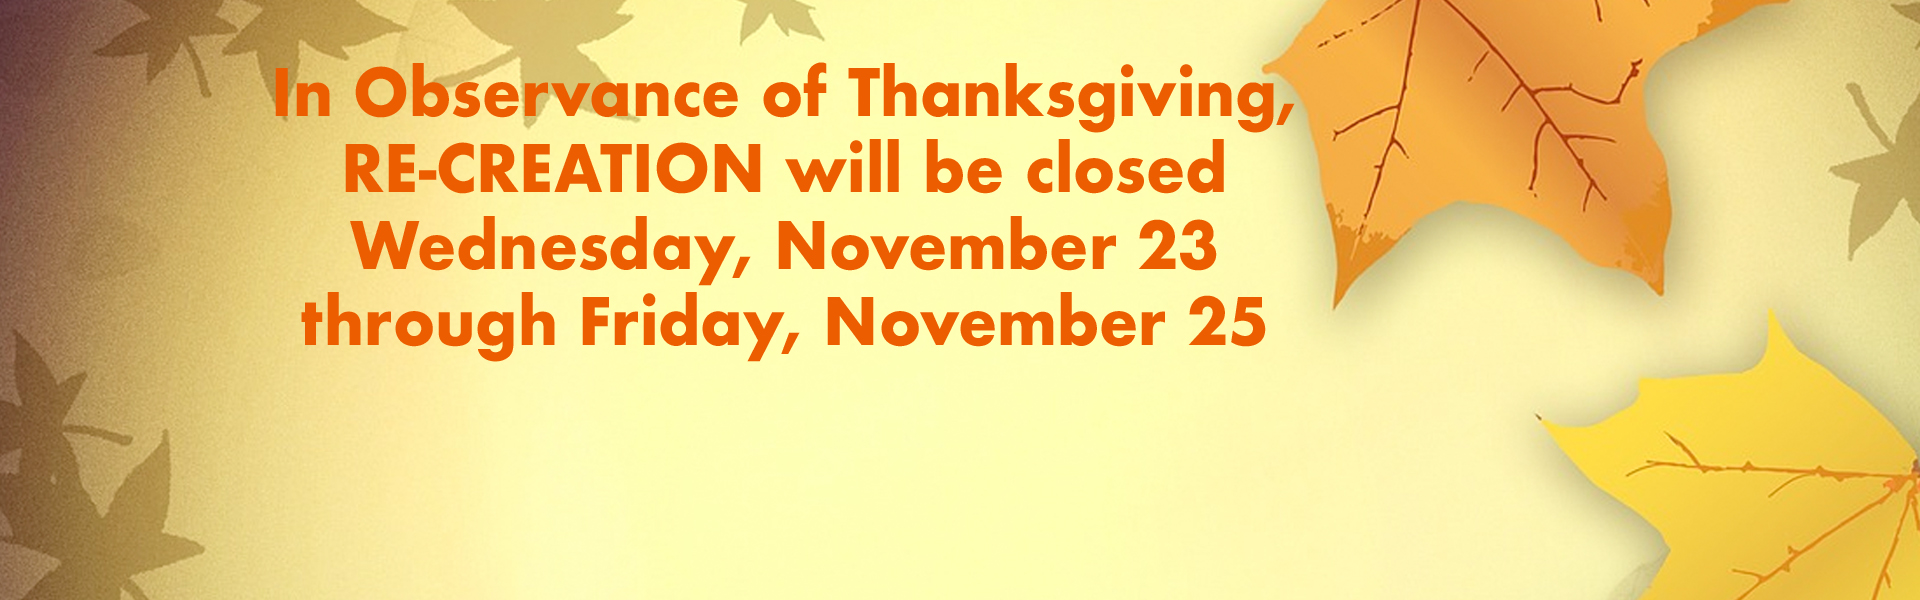 banner-closed-thanksgiving